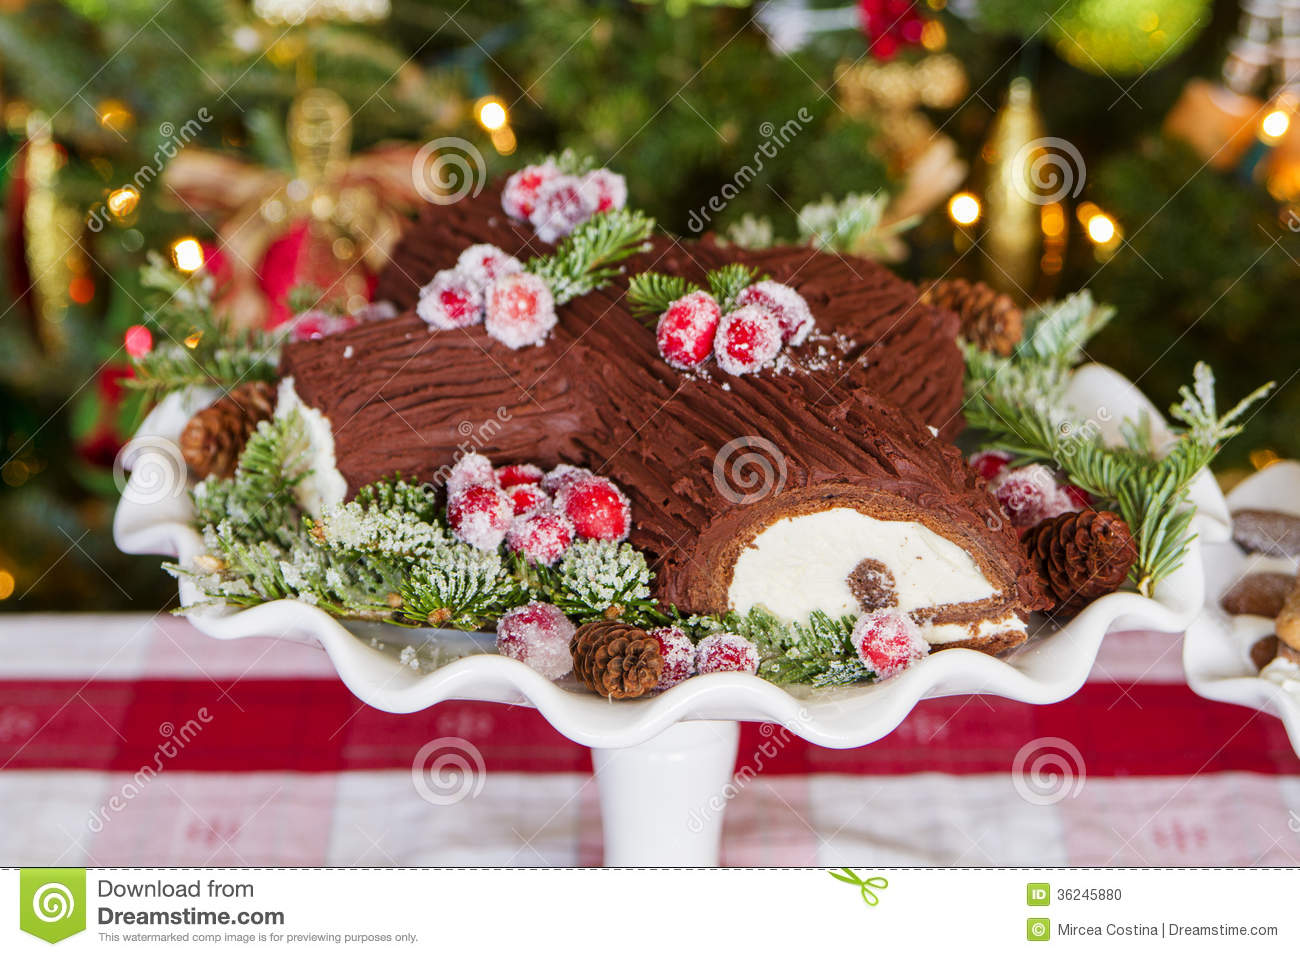 Decoration buche noel # Buche De Bois Décorative